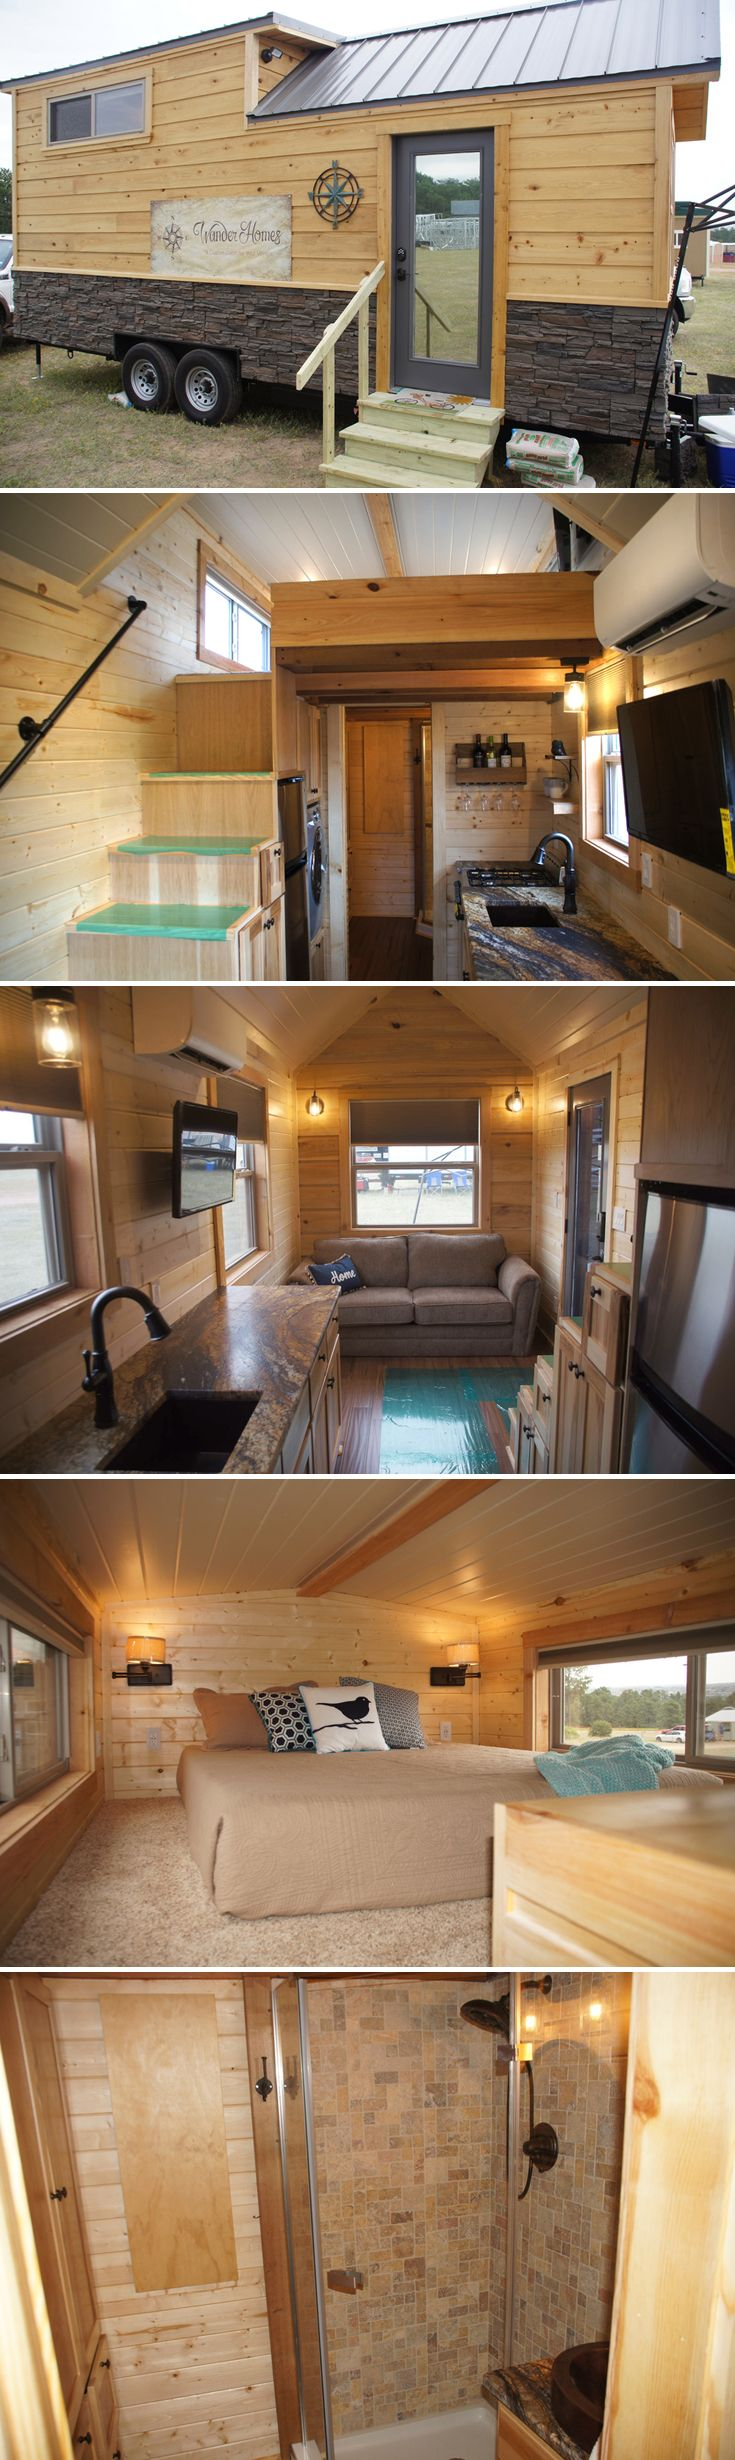 A tiny house with luxurious finishes including hickory cabinets, exotic granite countertops, bamboo flooring, and copper sinks in the kitchen and bathroom.